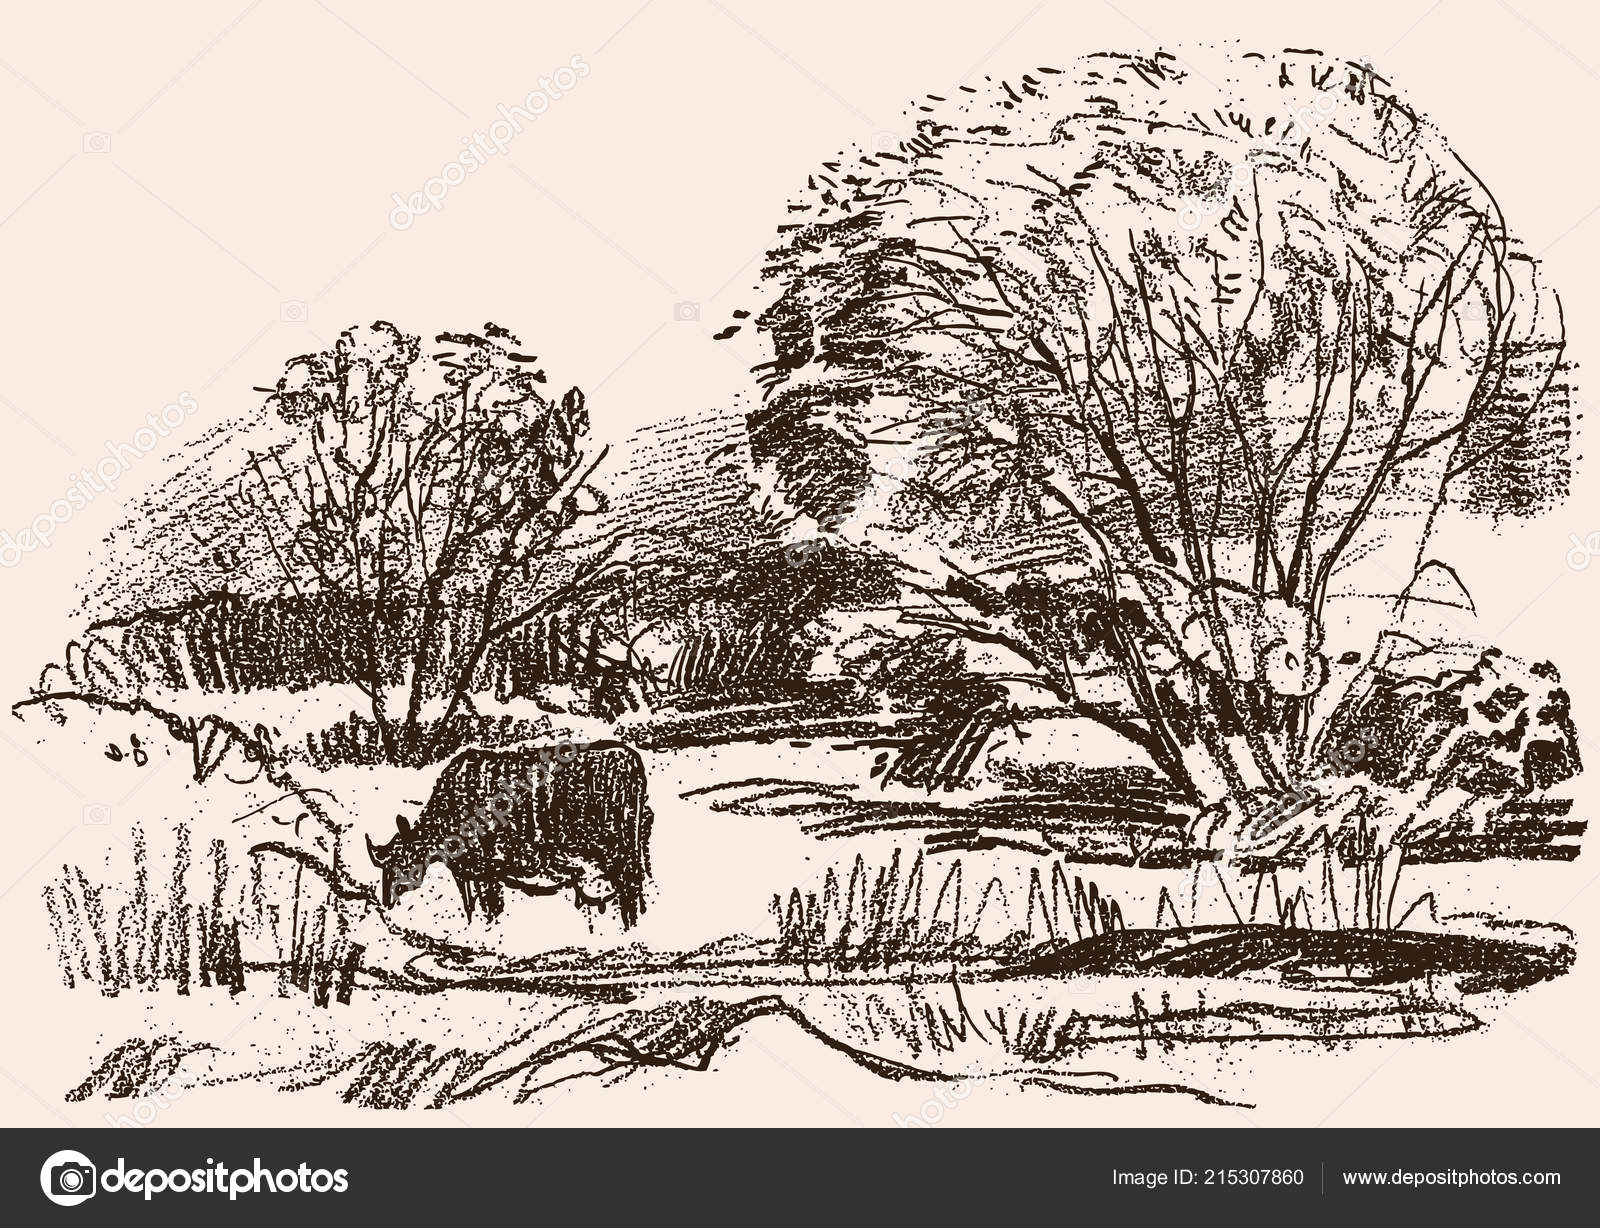 Cow Scenery Drawing Pencil Drawing Rural Landscape Grazing